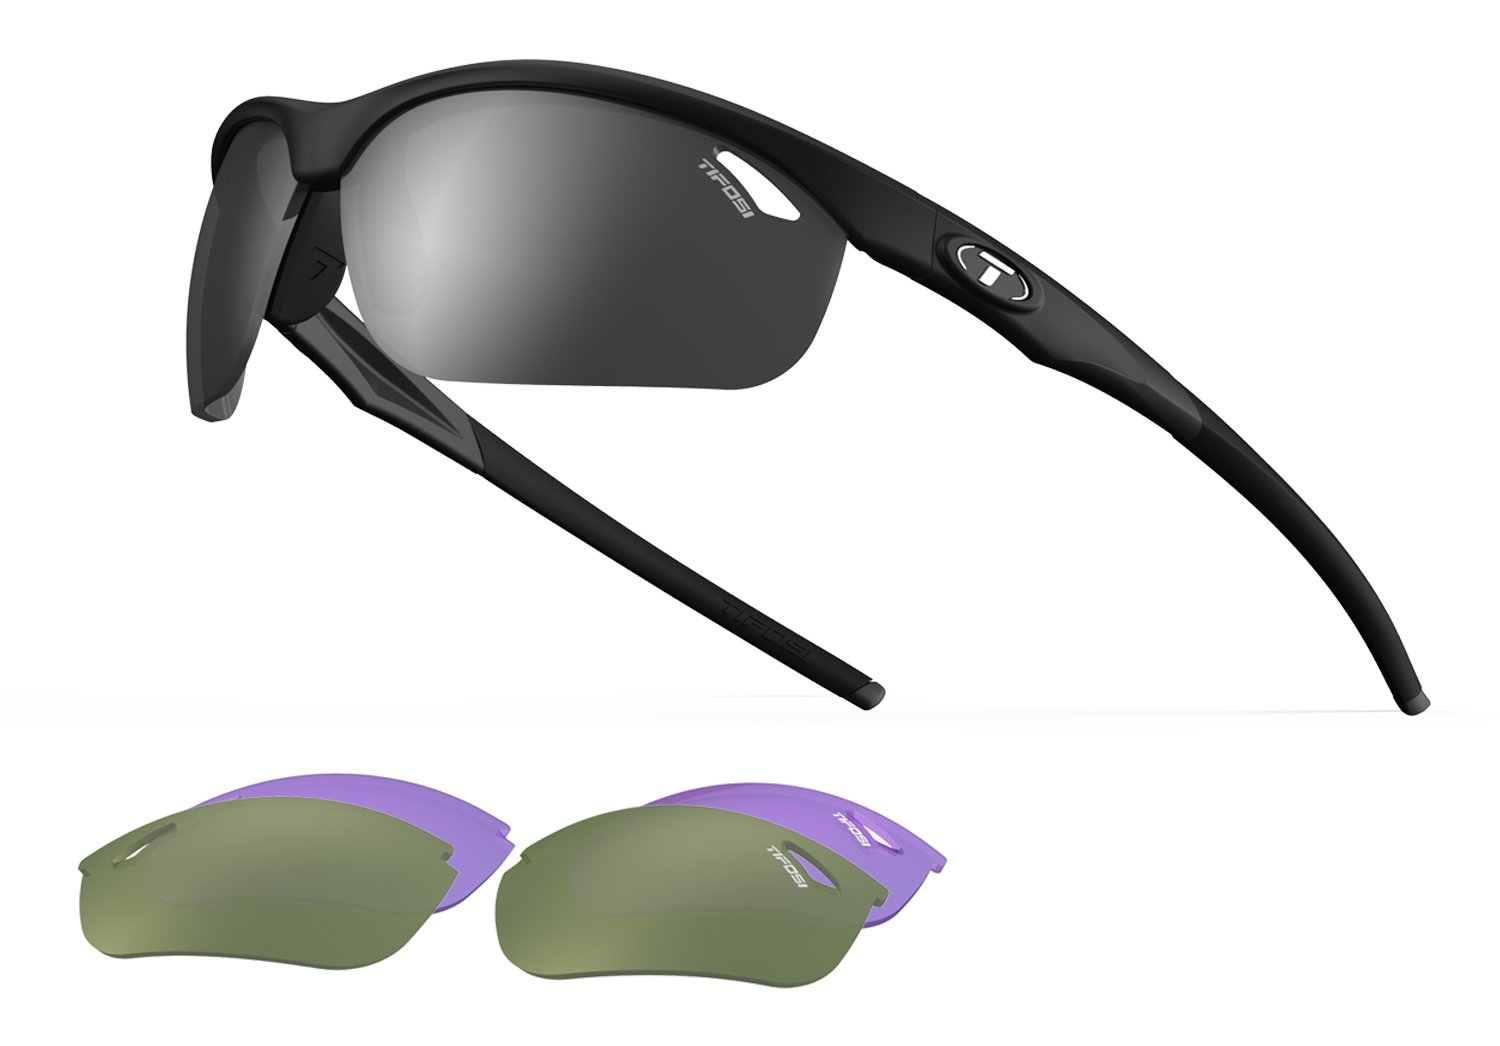 Veloce, Matte Black Golf Sunglasses with 3 interchangeable lenses by Tifosi